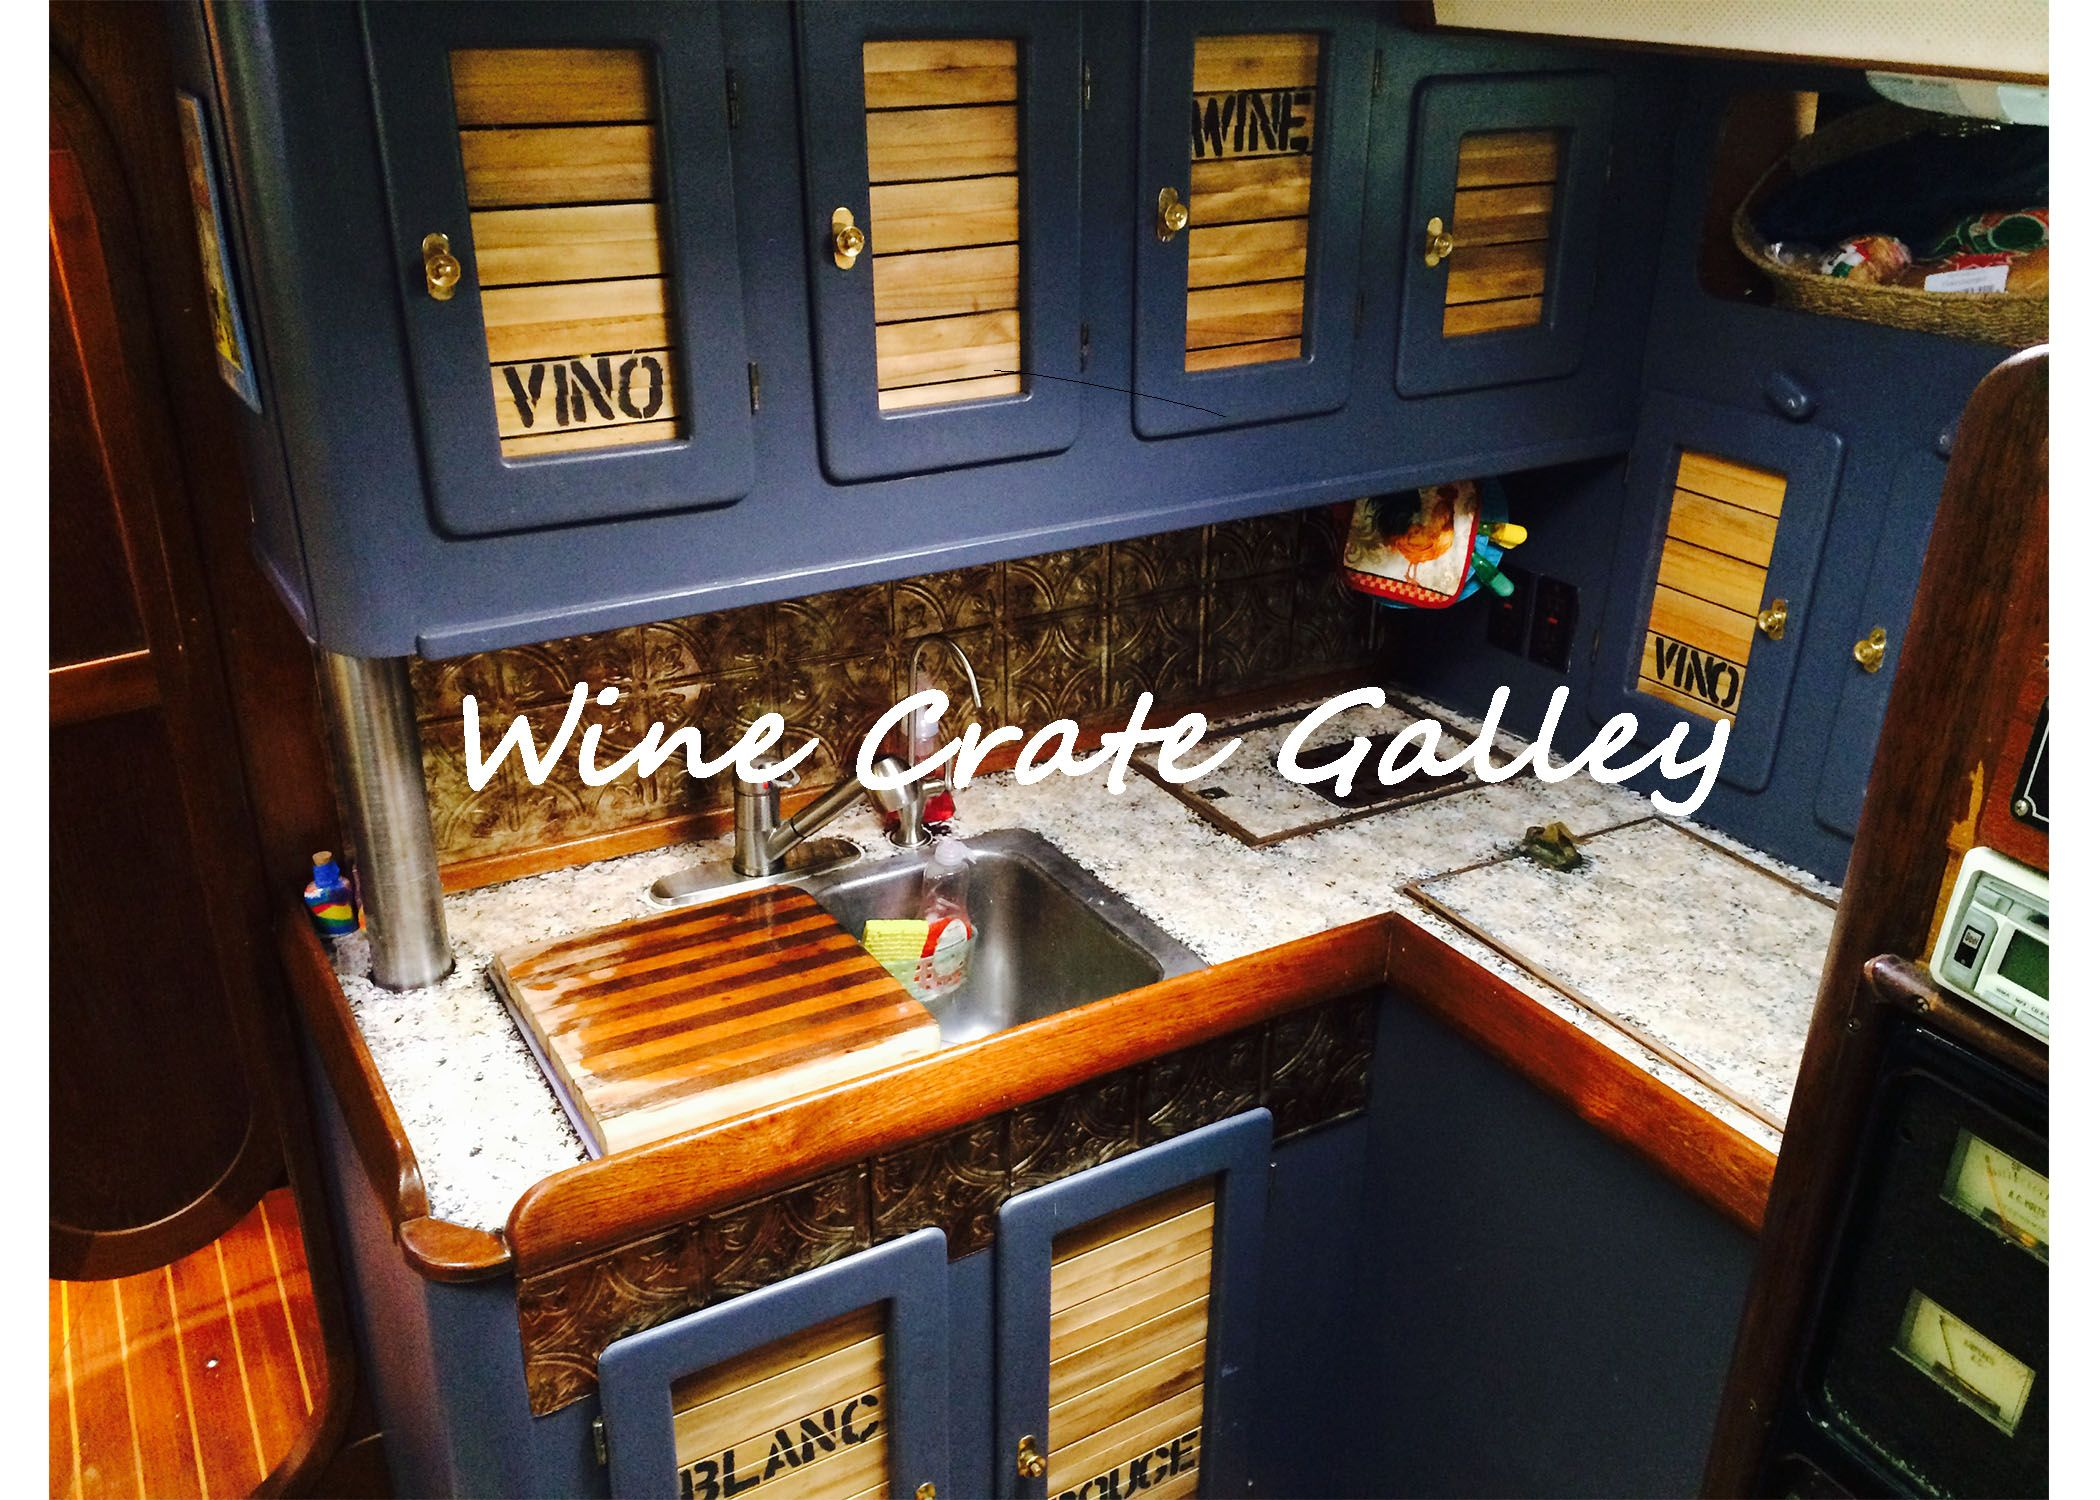 boat interior design inspiration wine crate galley boating blogs rh pinterest com